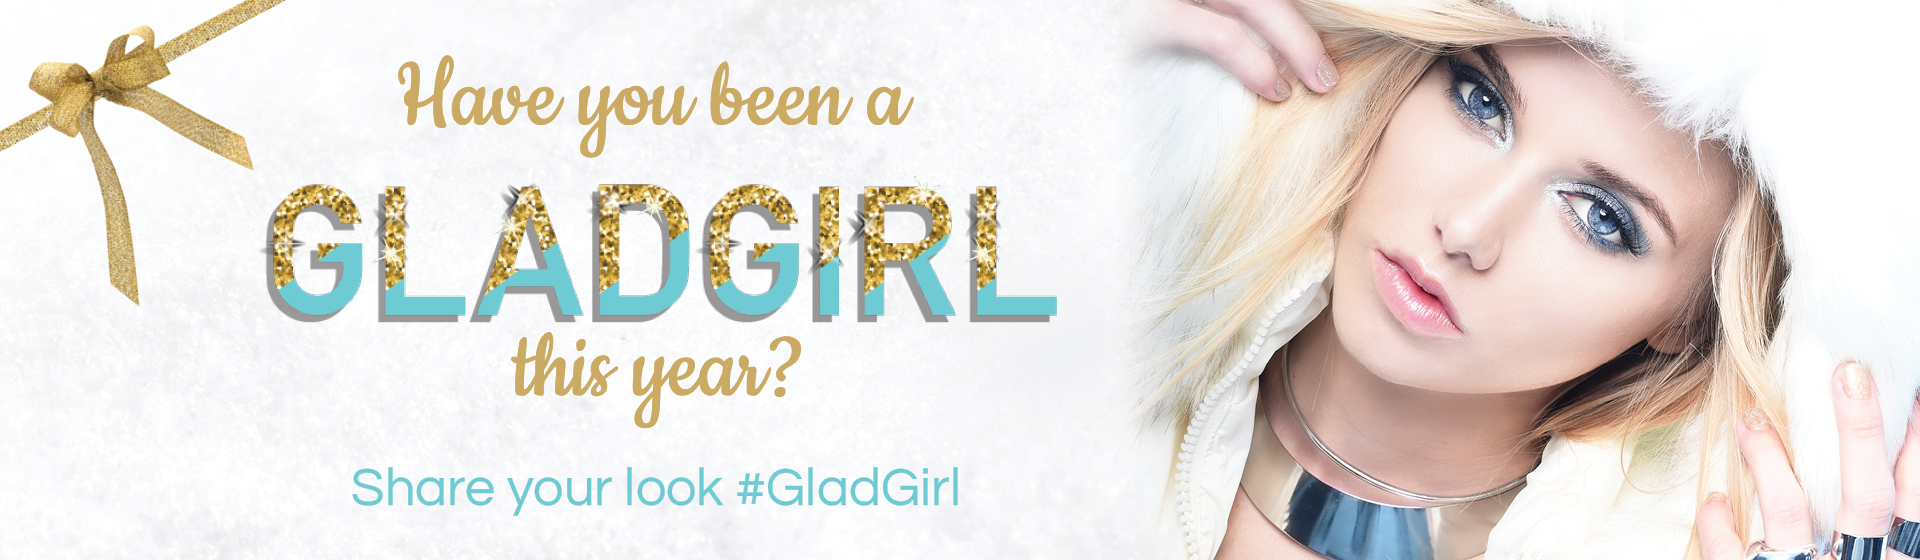 Are You GladGirl? Share your look #GladGirl.